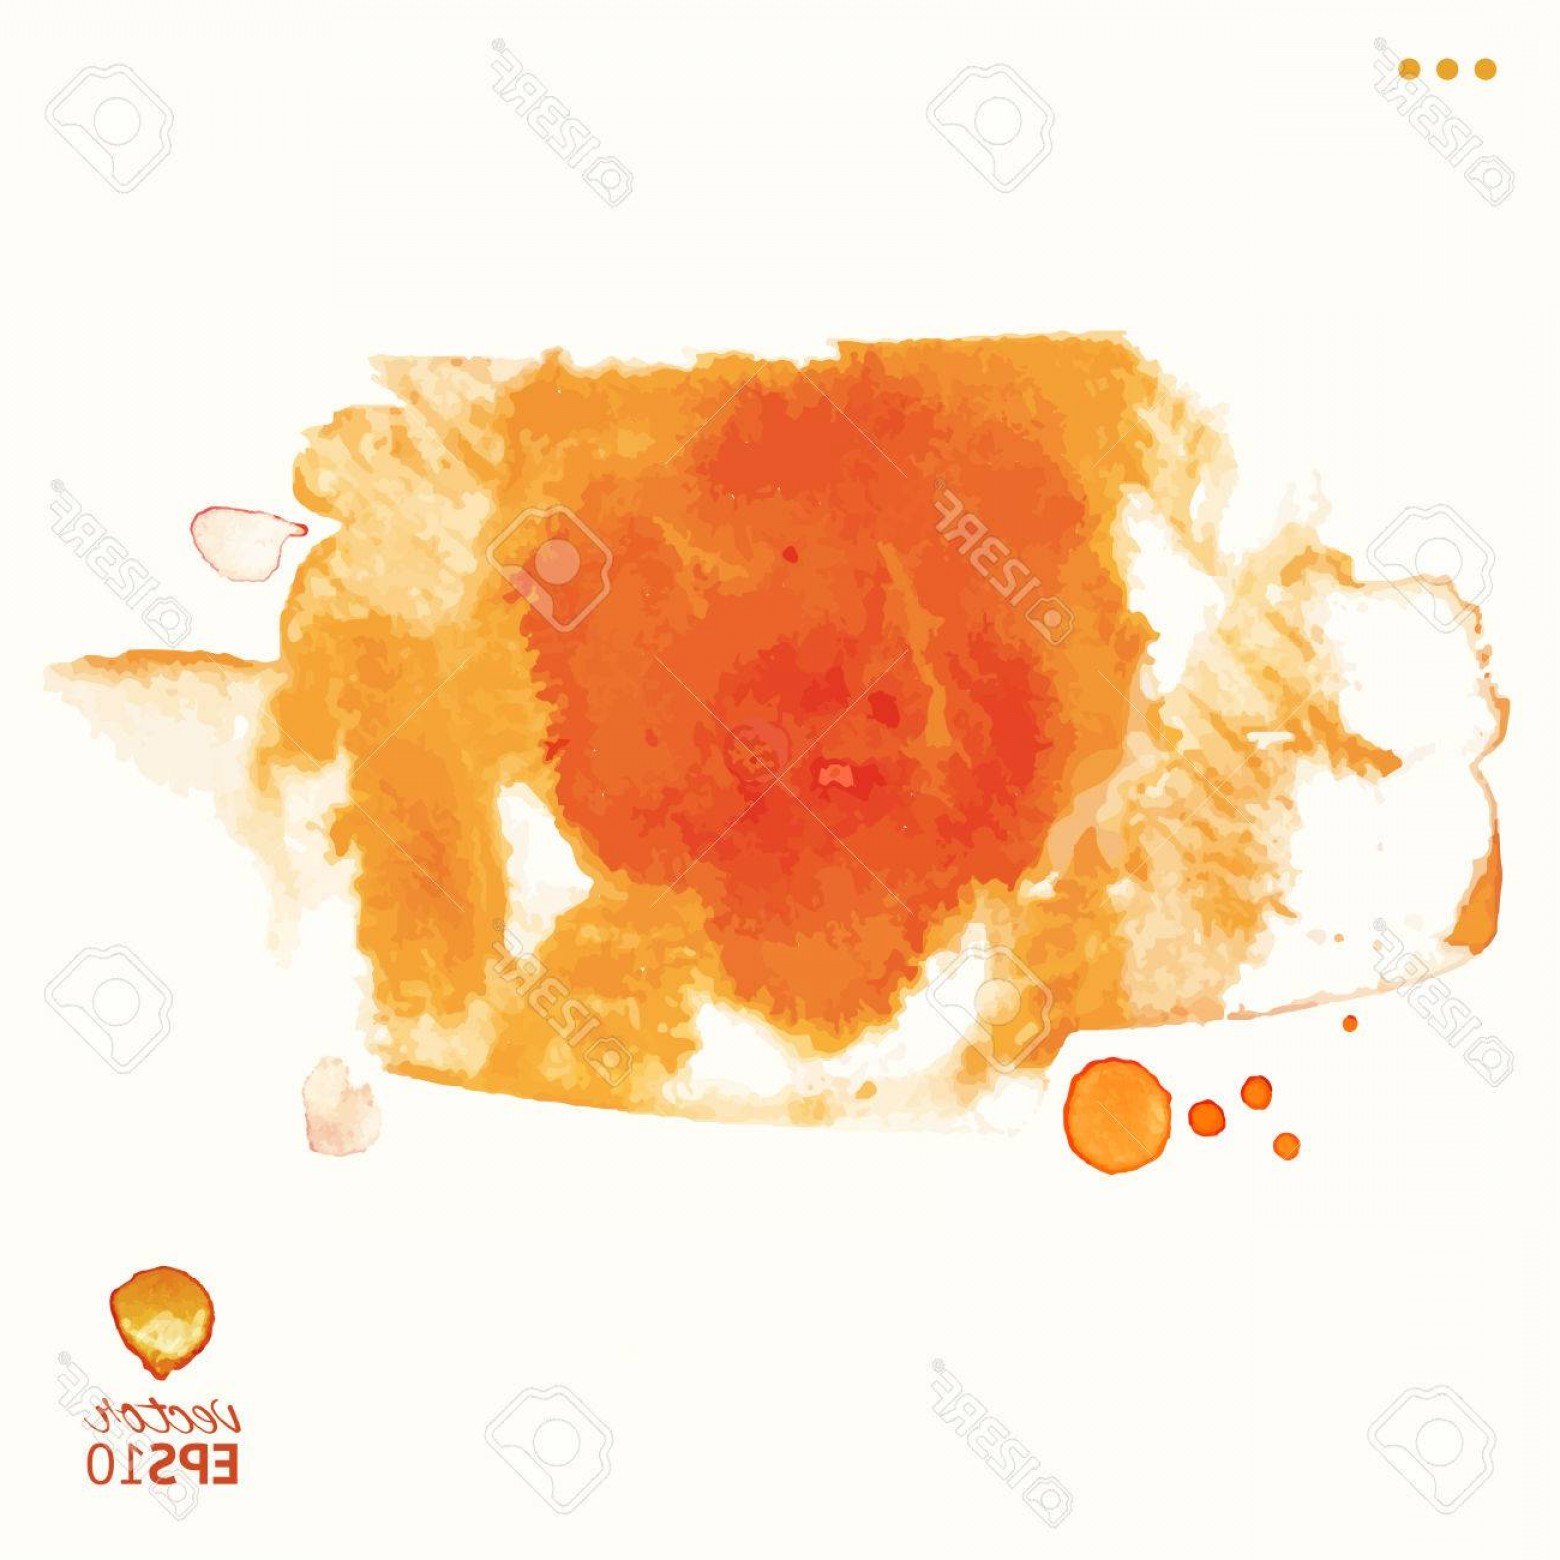 Orange Watercolor Vector Free: Photostock Vector Orange Watercolor Vector Splash Background Autumn Abstract Template Sunny Artistic Design Element